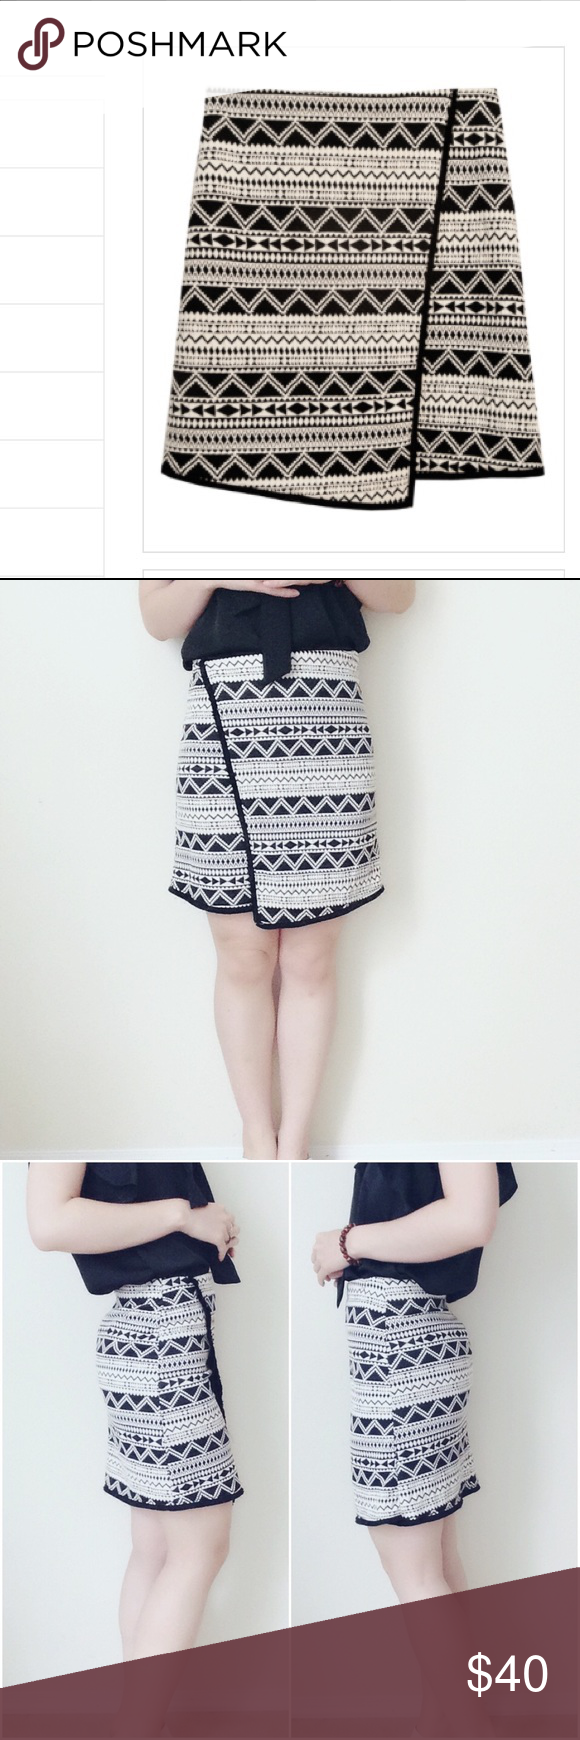 """Black/natural Aztec pattern mini wrap skirt Elegant knitting mini wrap skirt! Lightweight. Natural with black Aztec pattern. Made in USA. True to size (model size S, wearing S, 5'5"""") 🚫no trade Potter's Pot Skirts Mini"""